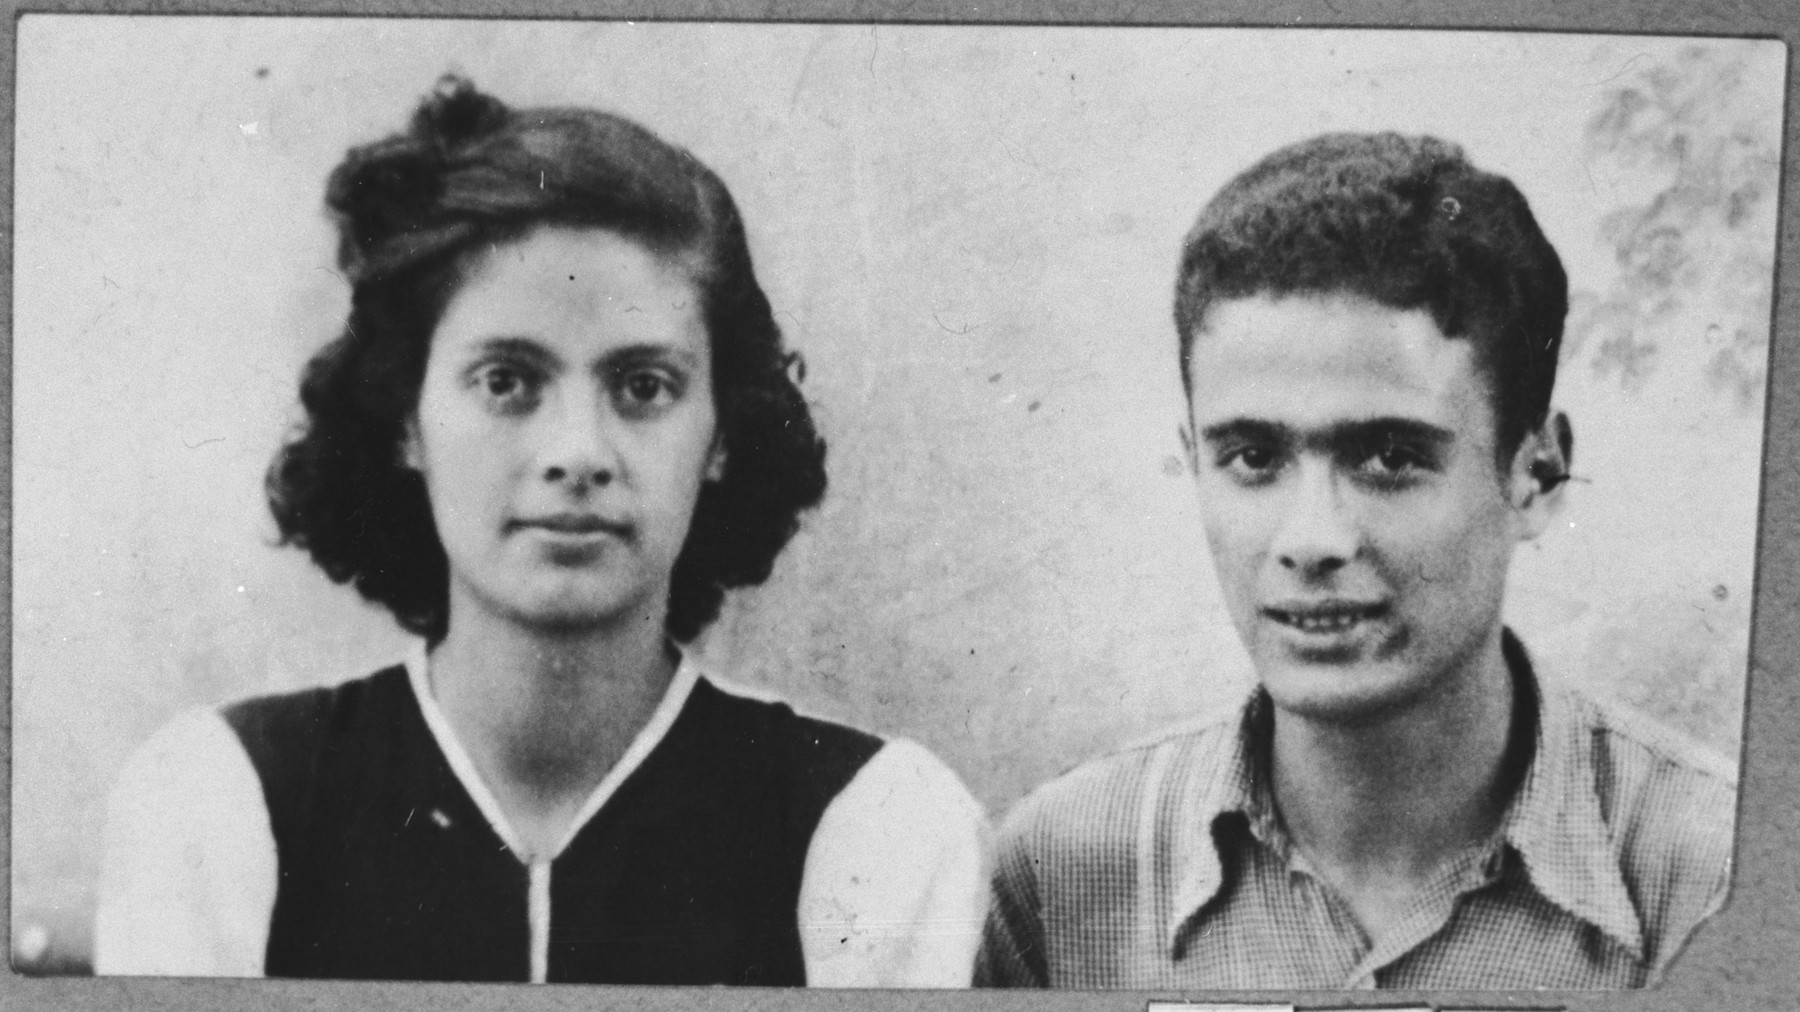 Portrait of Victoria and Isak Assael, the daughter and son of Shabetai Assael and Arnesta Assael.  They were students.  They lived at Sremska 9 in Bitola.  Isak Assael's brother Haim Assael immigrated to Chile in the early 1930s.  He tried to bring Isak to Chile, but he was deported in March 1943.